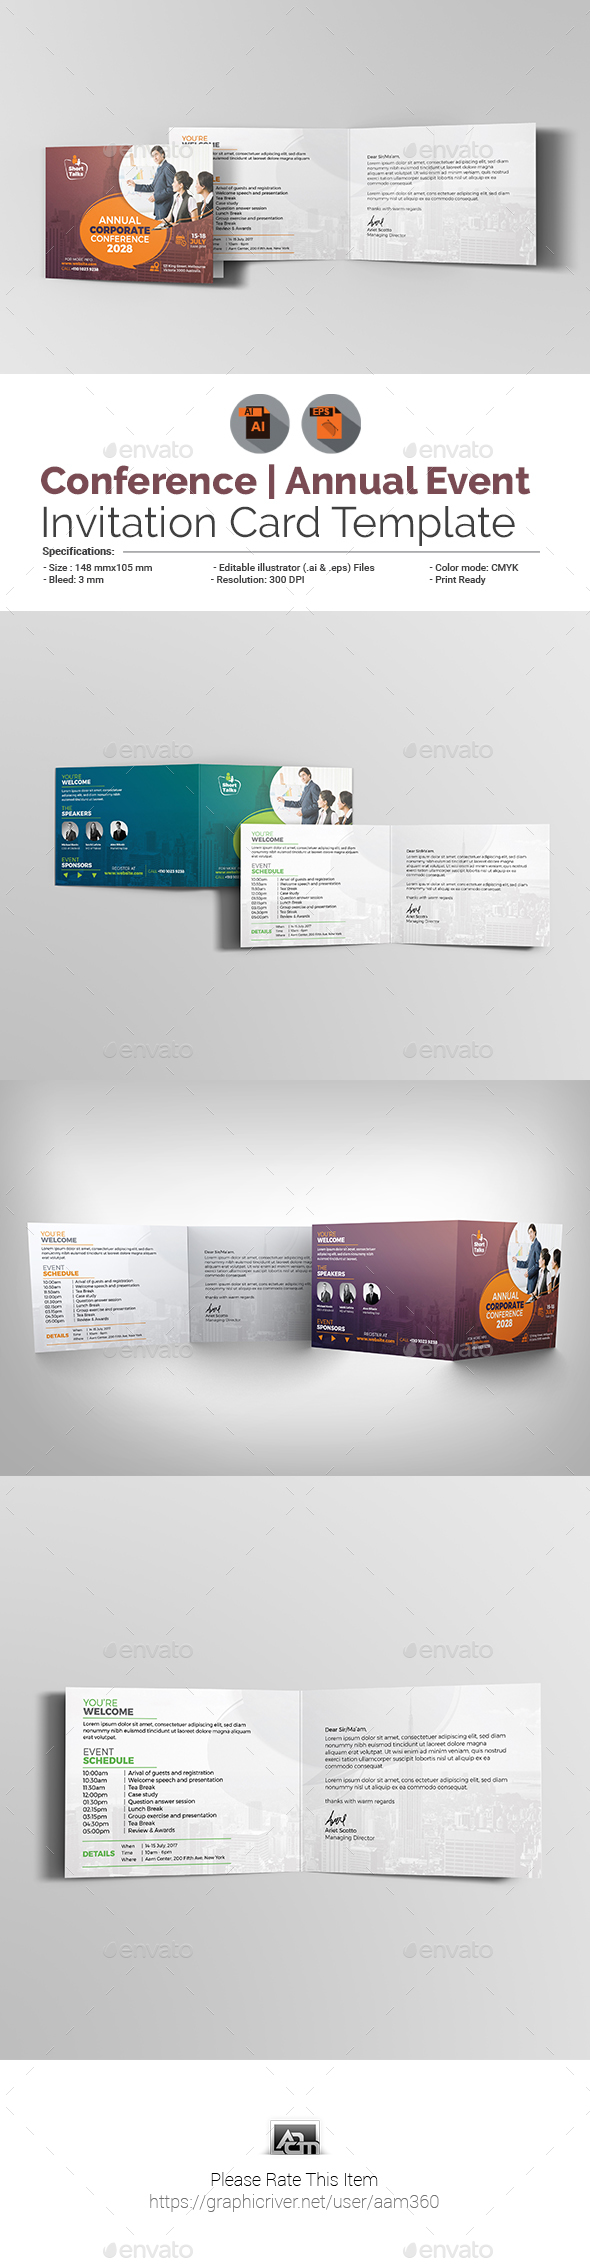 Annual Corporate Conference Invitation Card - Cards & Invites Print Templates